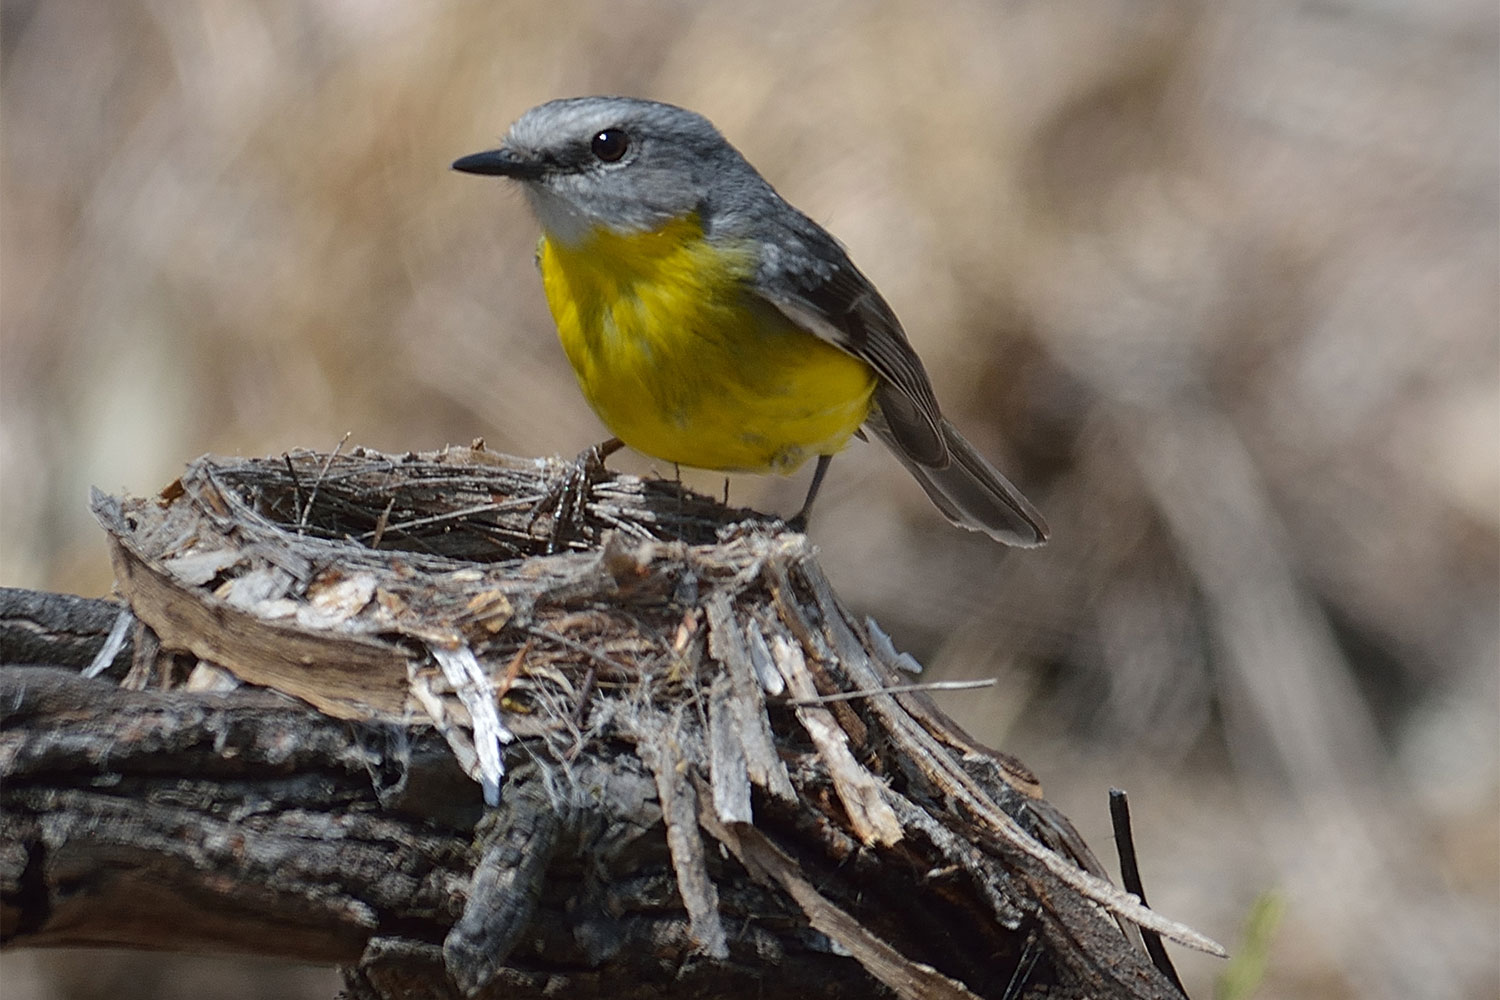 Eastern Yellow Robin standing on a nest